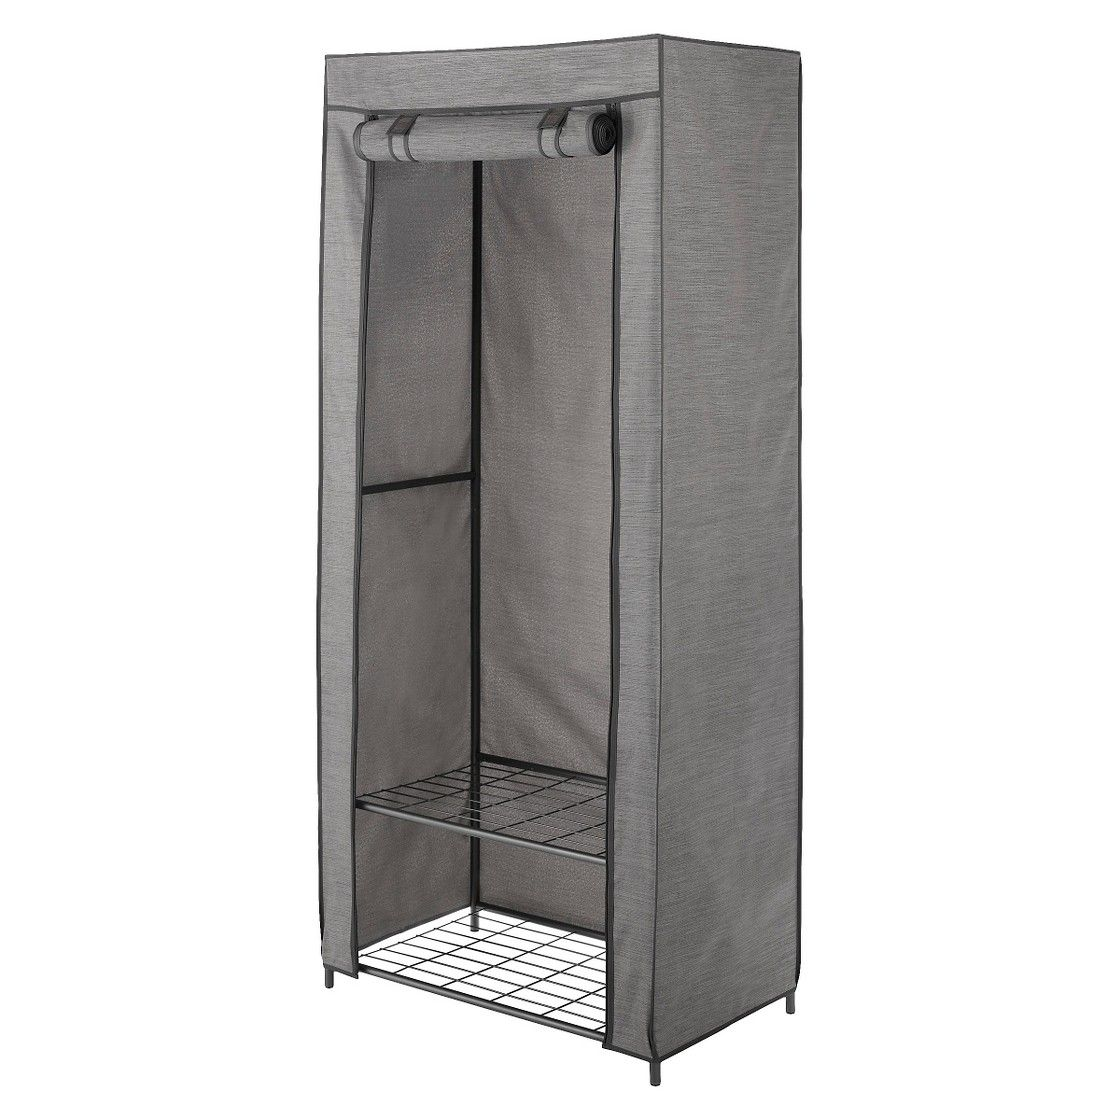 2 Tier Wardrobe Metal Frame With Two Shelves And Breathable Cover Threshold Free Standing Closet Storage Closet Organization Portable Closet